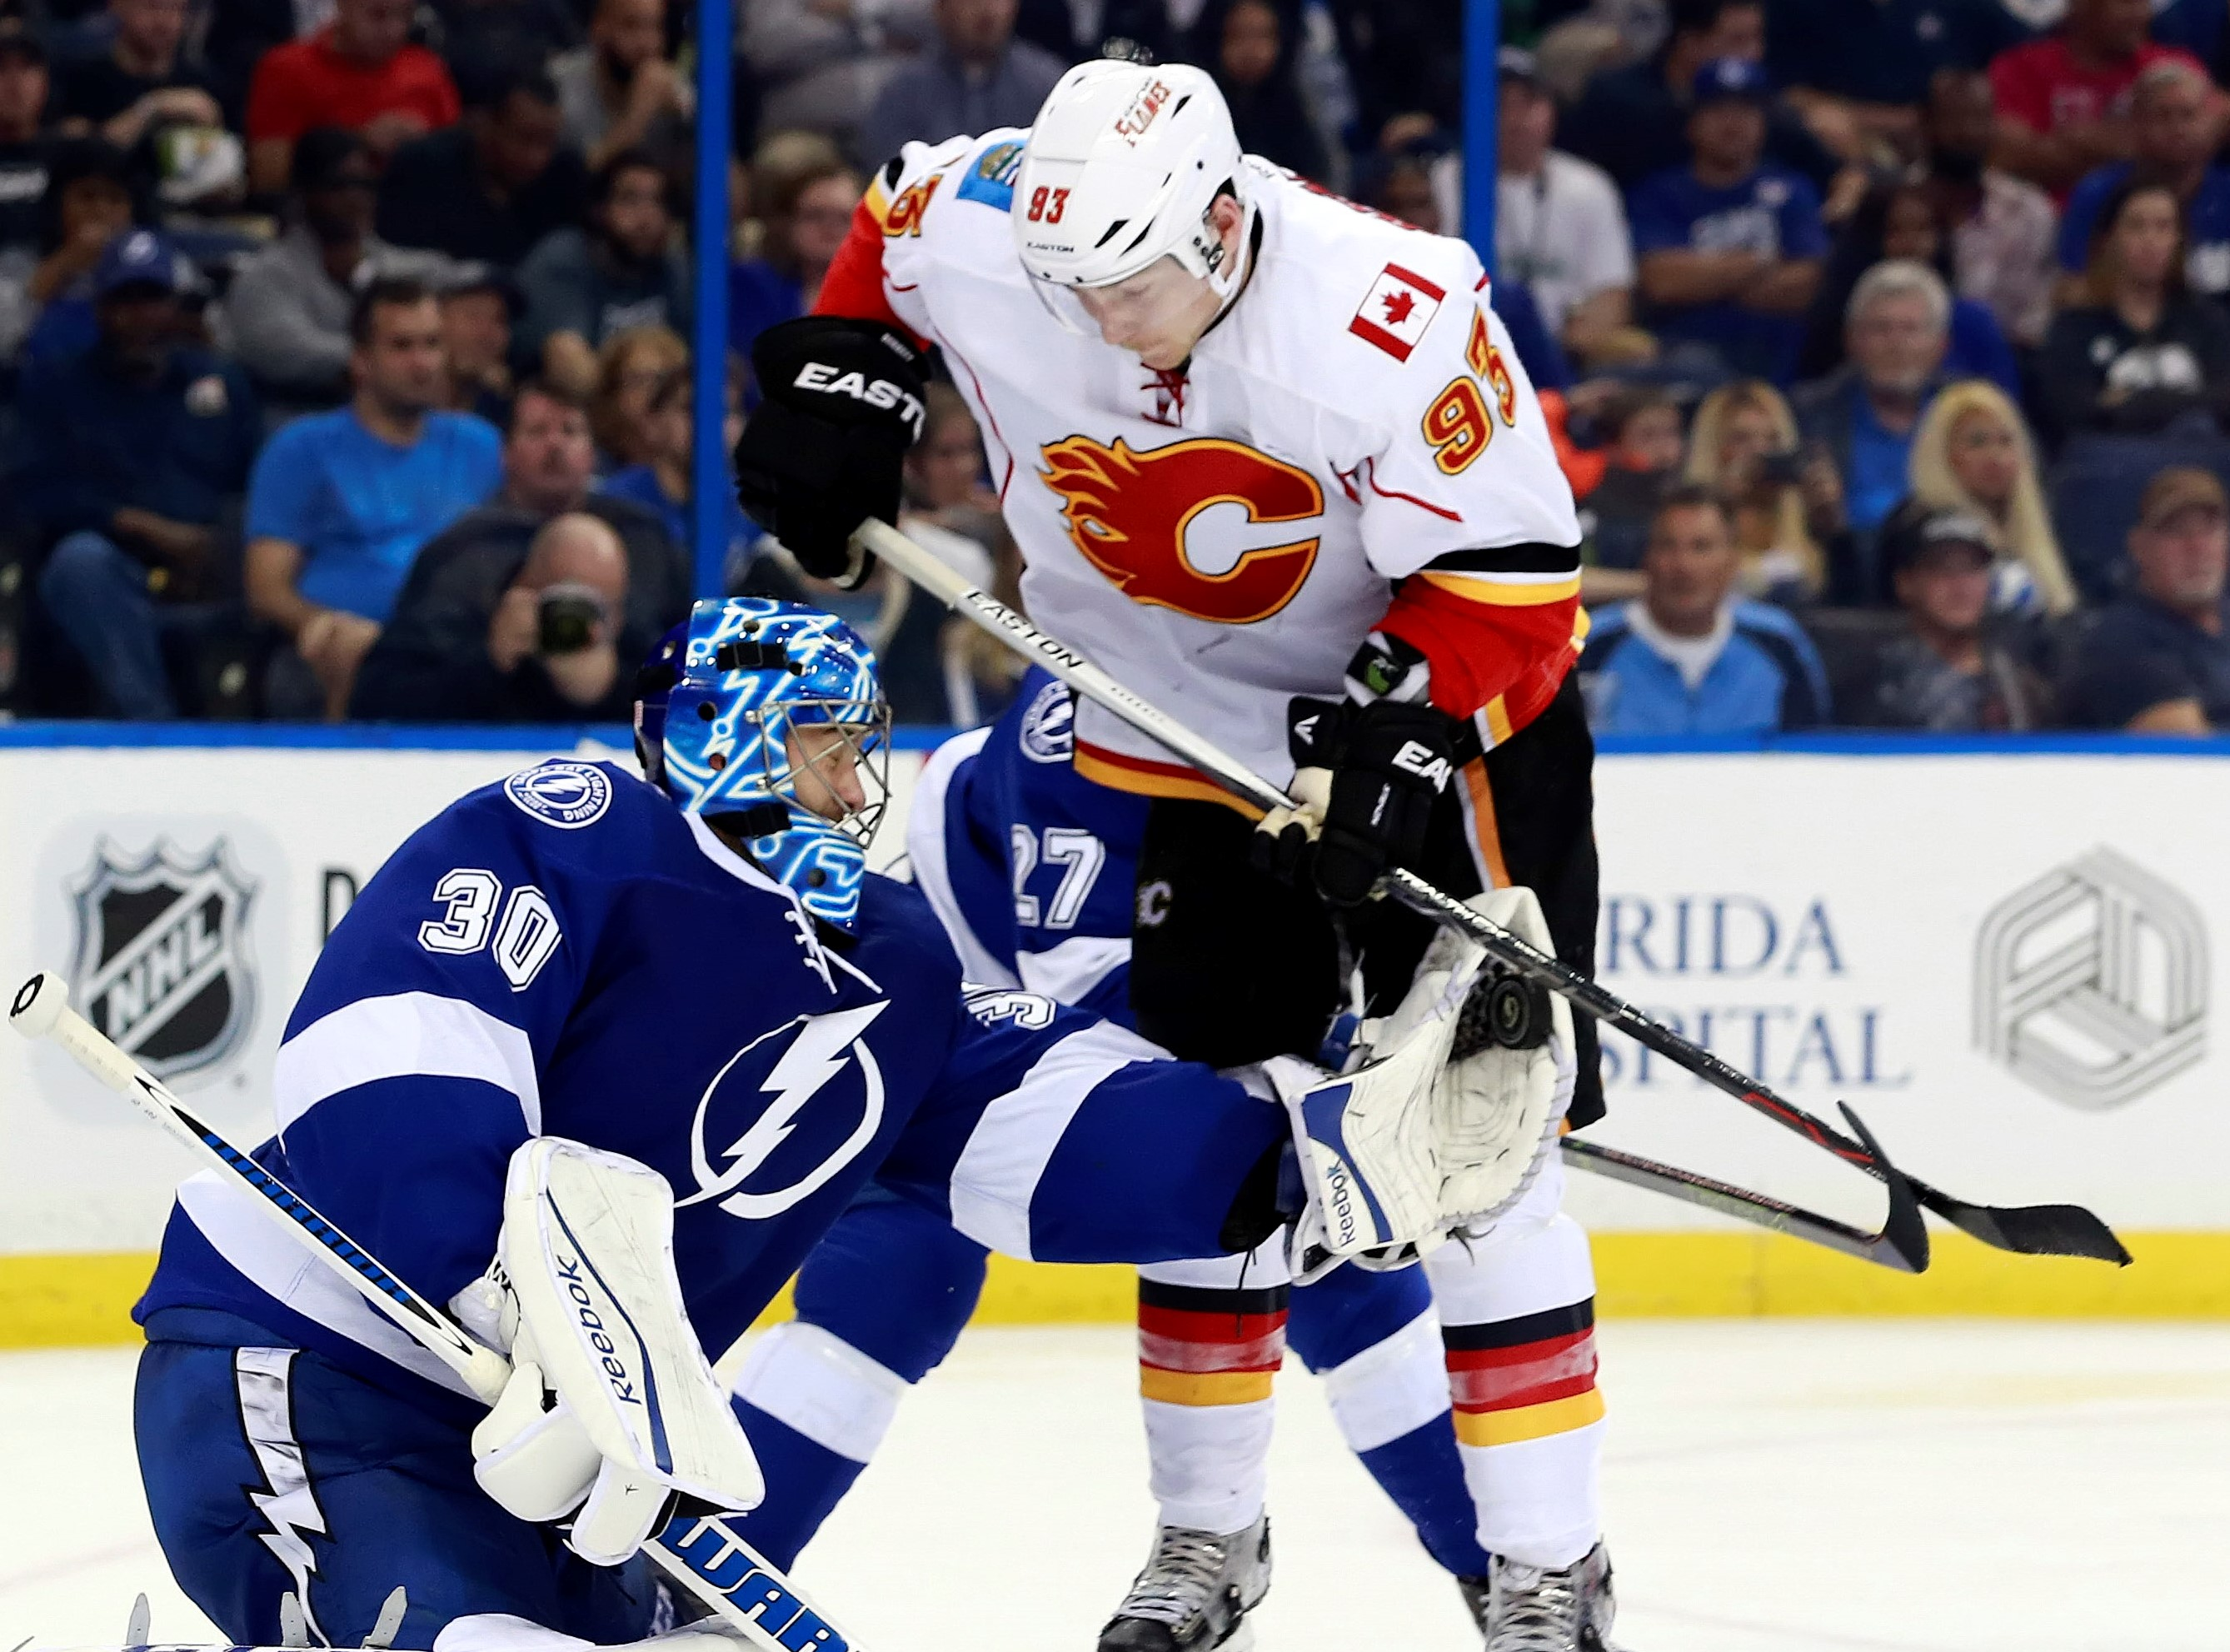 Nov 12, 2015; Tampa, FL, USA; Tampa Bay Lightning goalie Ben Bishop (30) makes a save from Calgary Flames center Sam Bennett (93) during the third period at Amalie Arena. Tampa Bay Lightning defeated the Calgary Flames 3-1. Mandatory Credit: Kim Klement-USA TODAY Sports